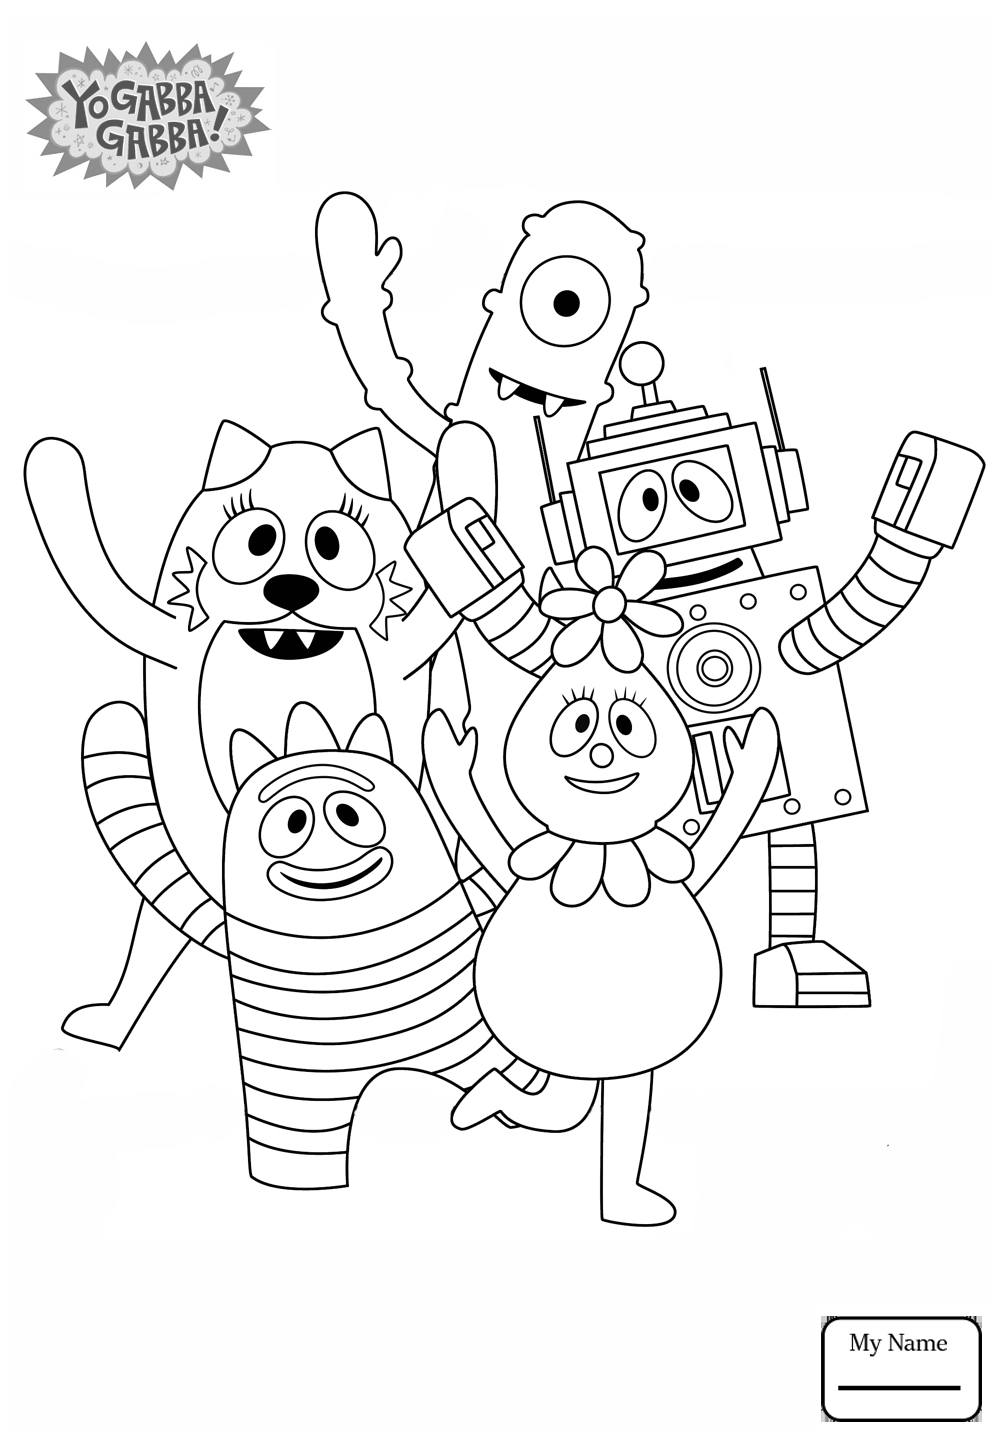 masterpiece coloring pages masterpiece coloring pages kids art projects montessori masterpiece coloring pages